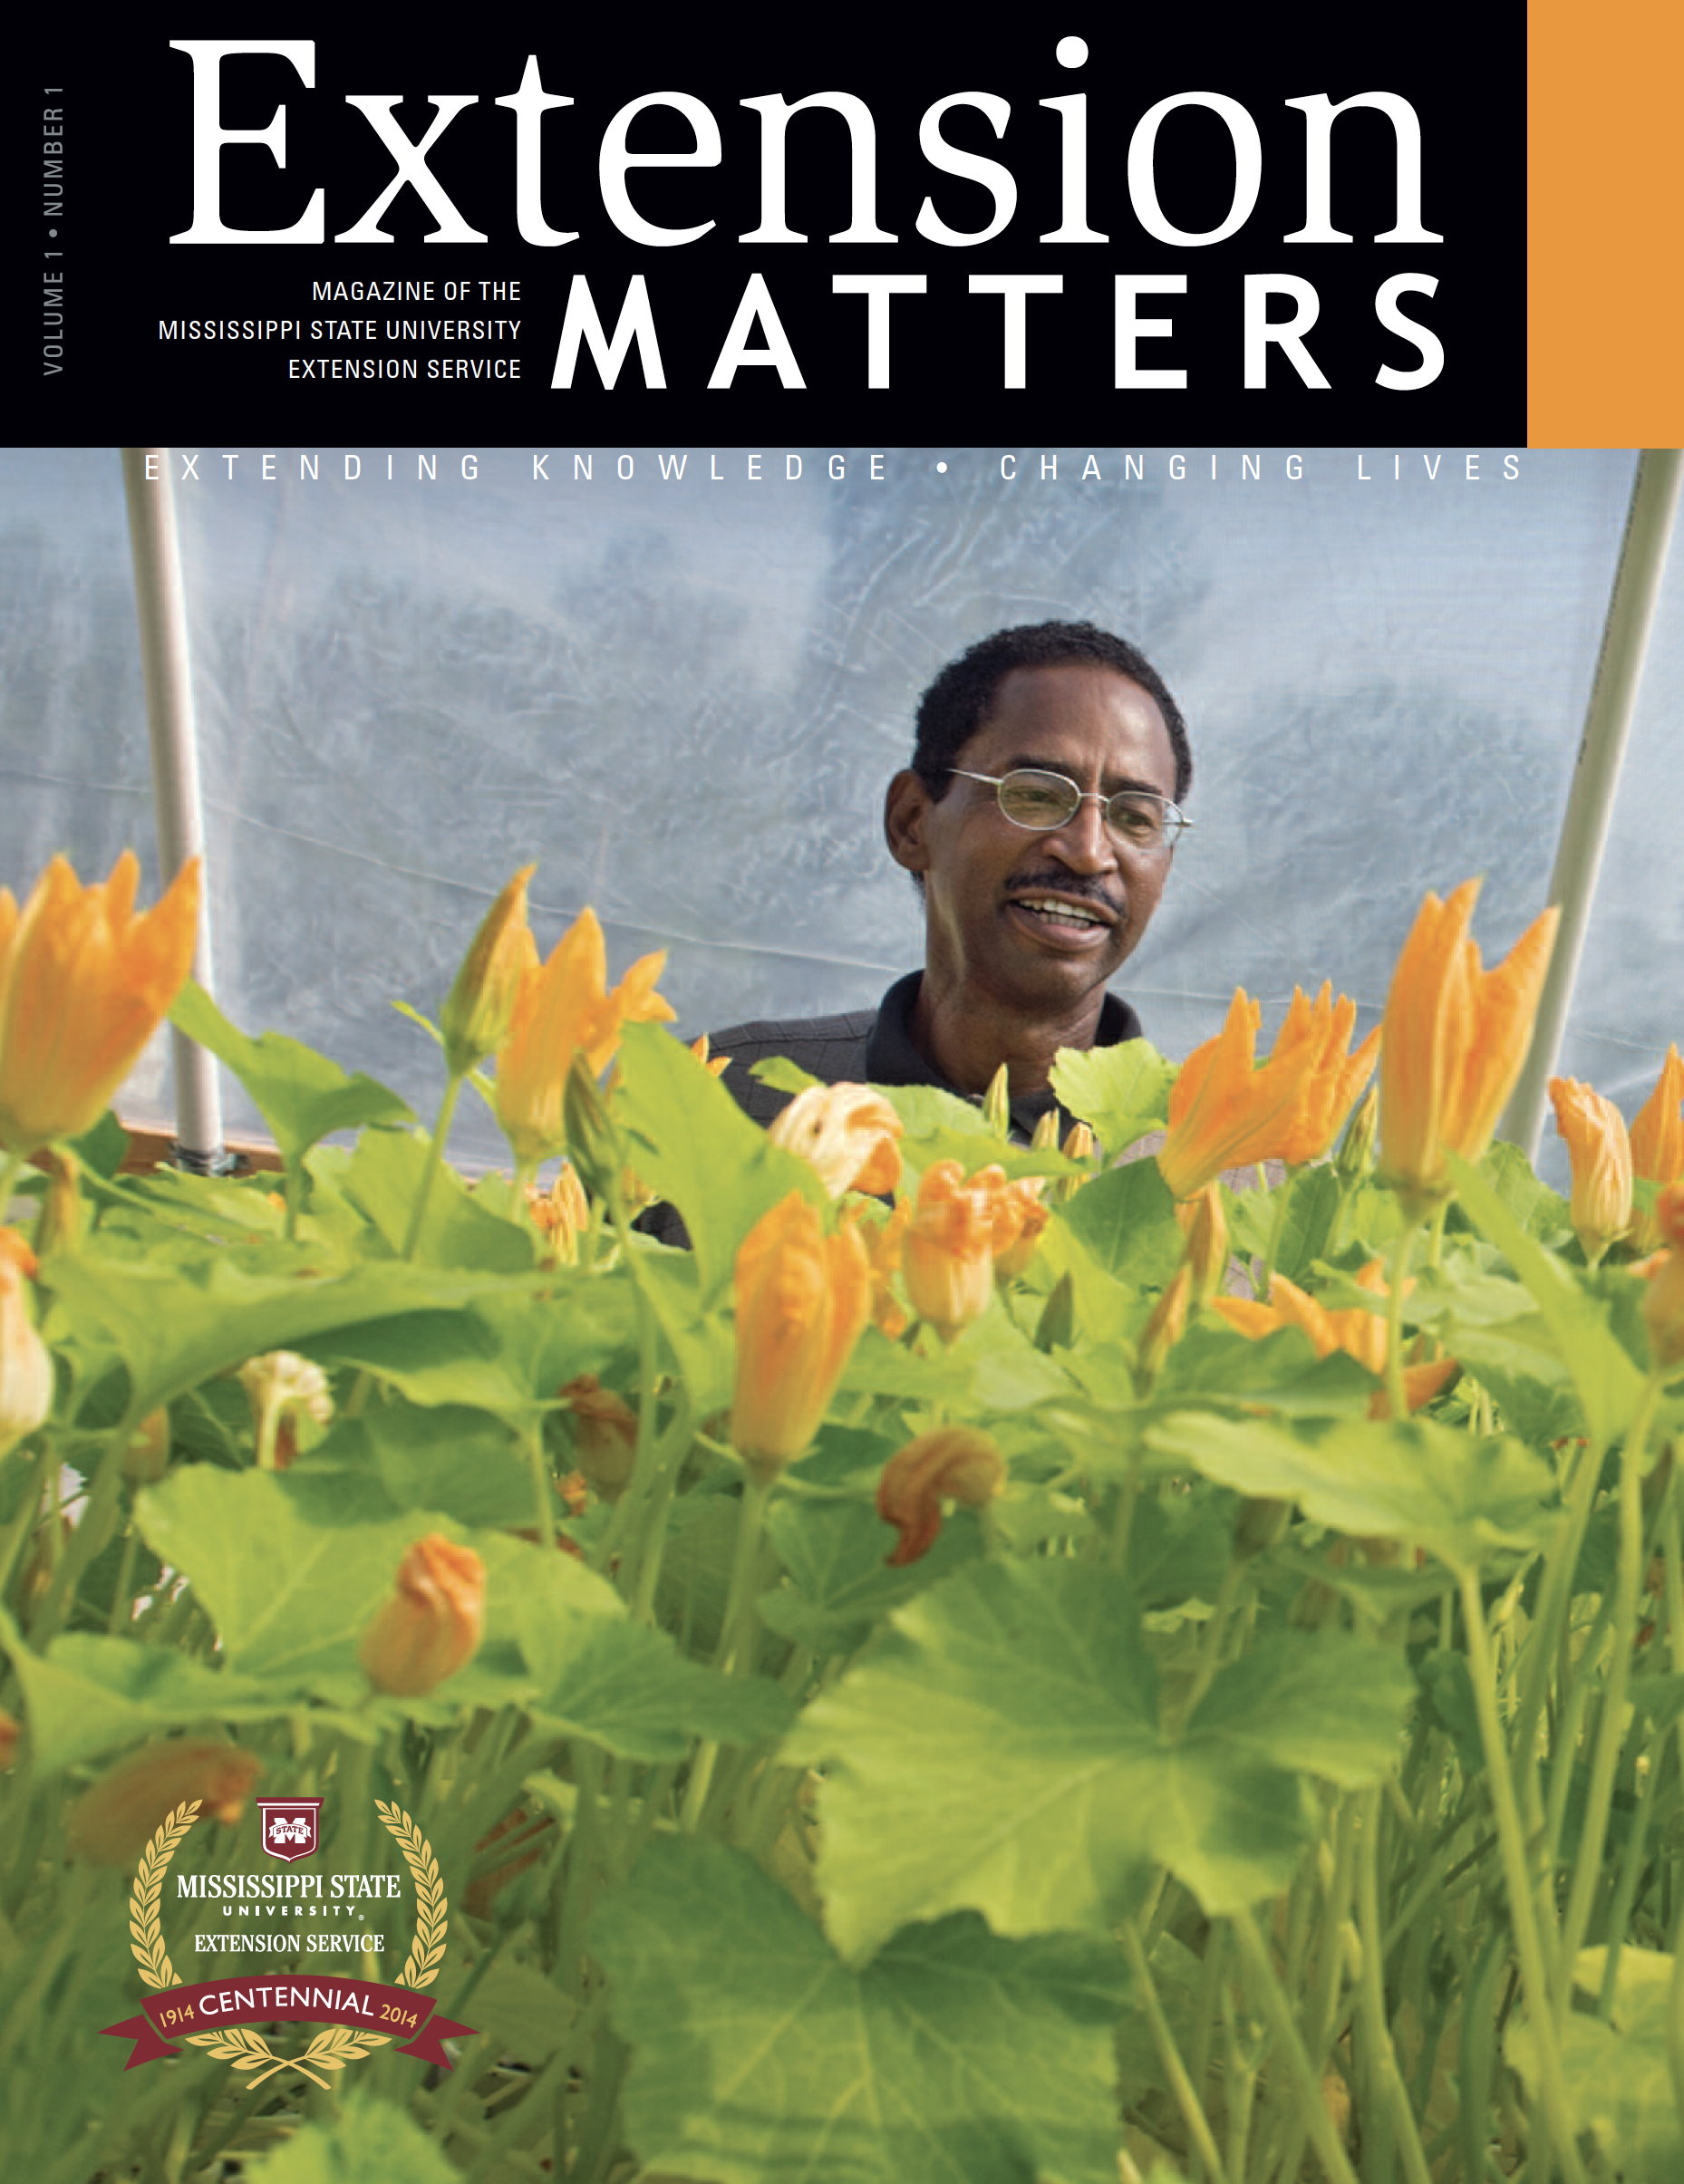 Extension Matters Volume 1 Number 1.